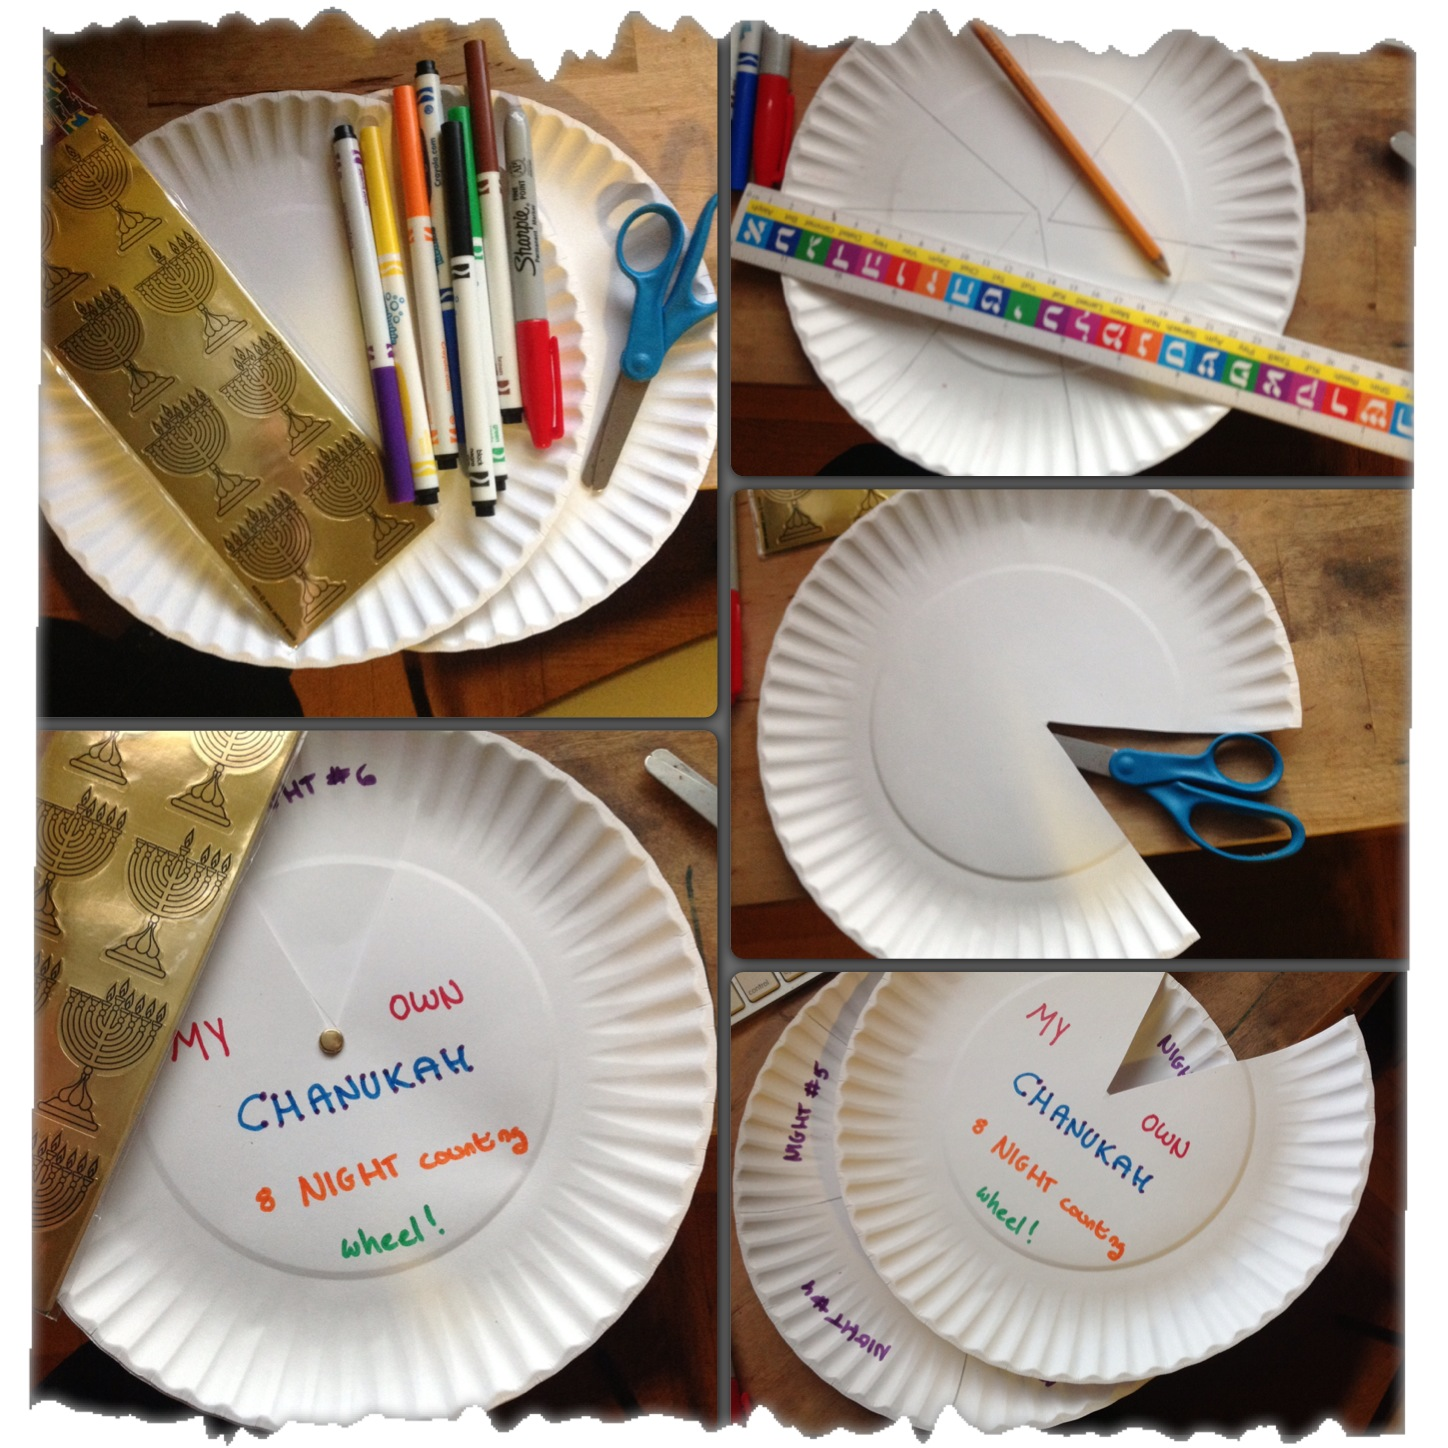 u0027101 Things to do With a Paper Plateu0027 Craft #2 Chanukah 8 Night Counting Wheel & 101 Things to do With a Paper Plateu0027 Craft #2 Chanukah 8 Night ...